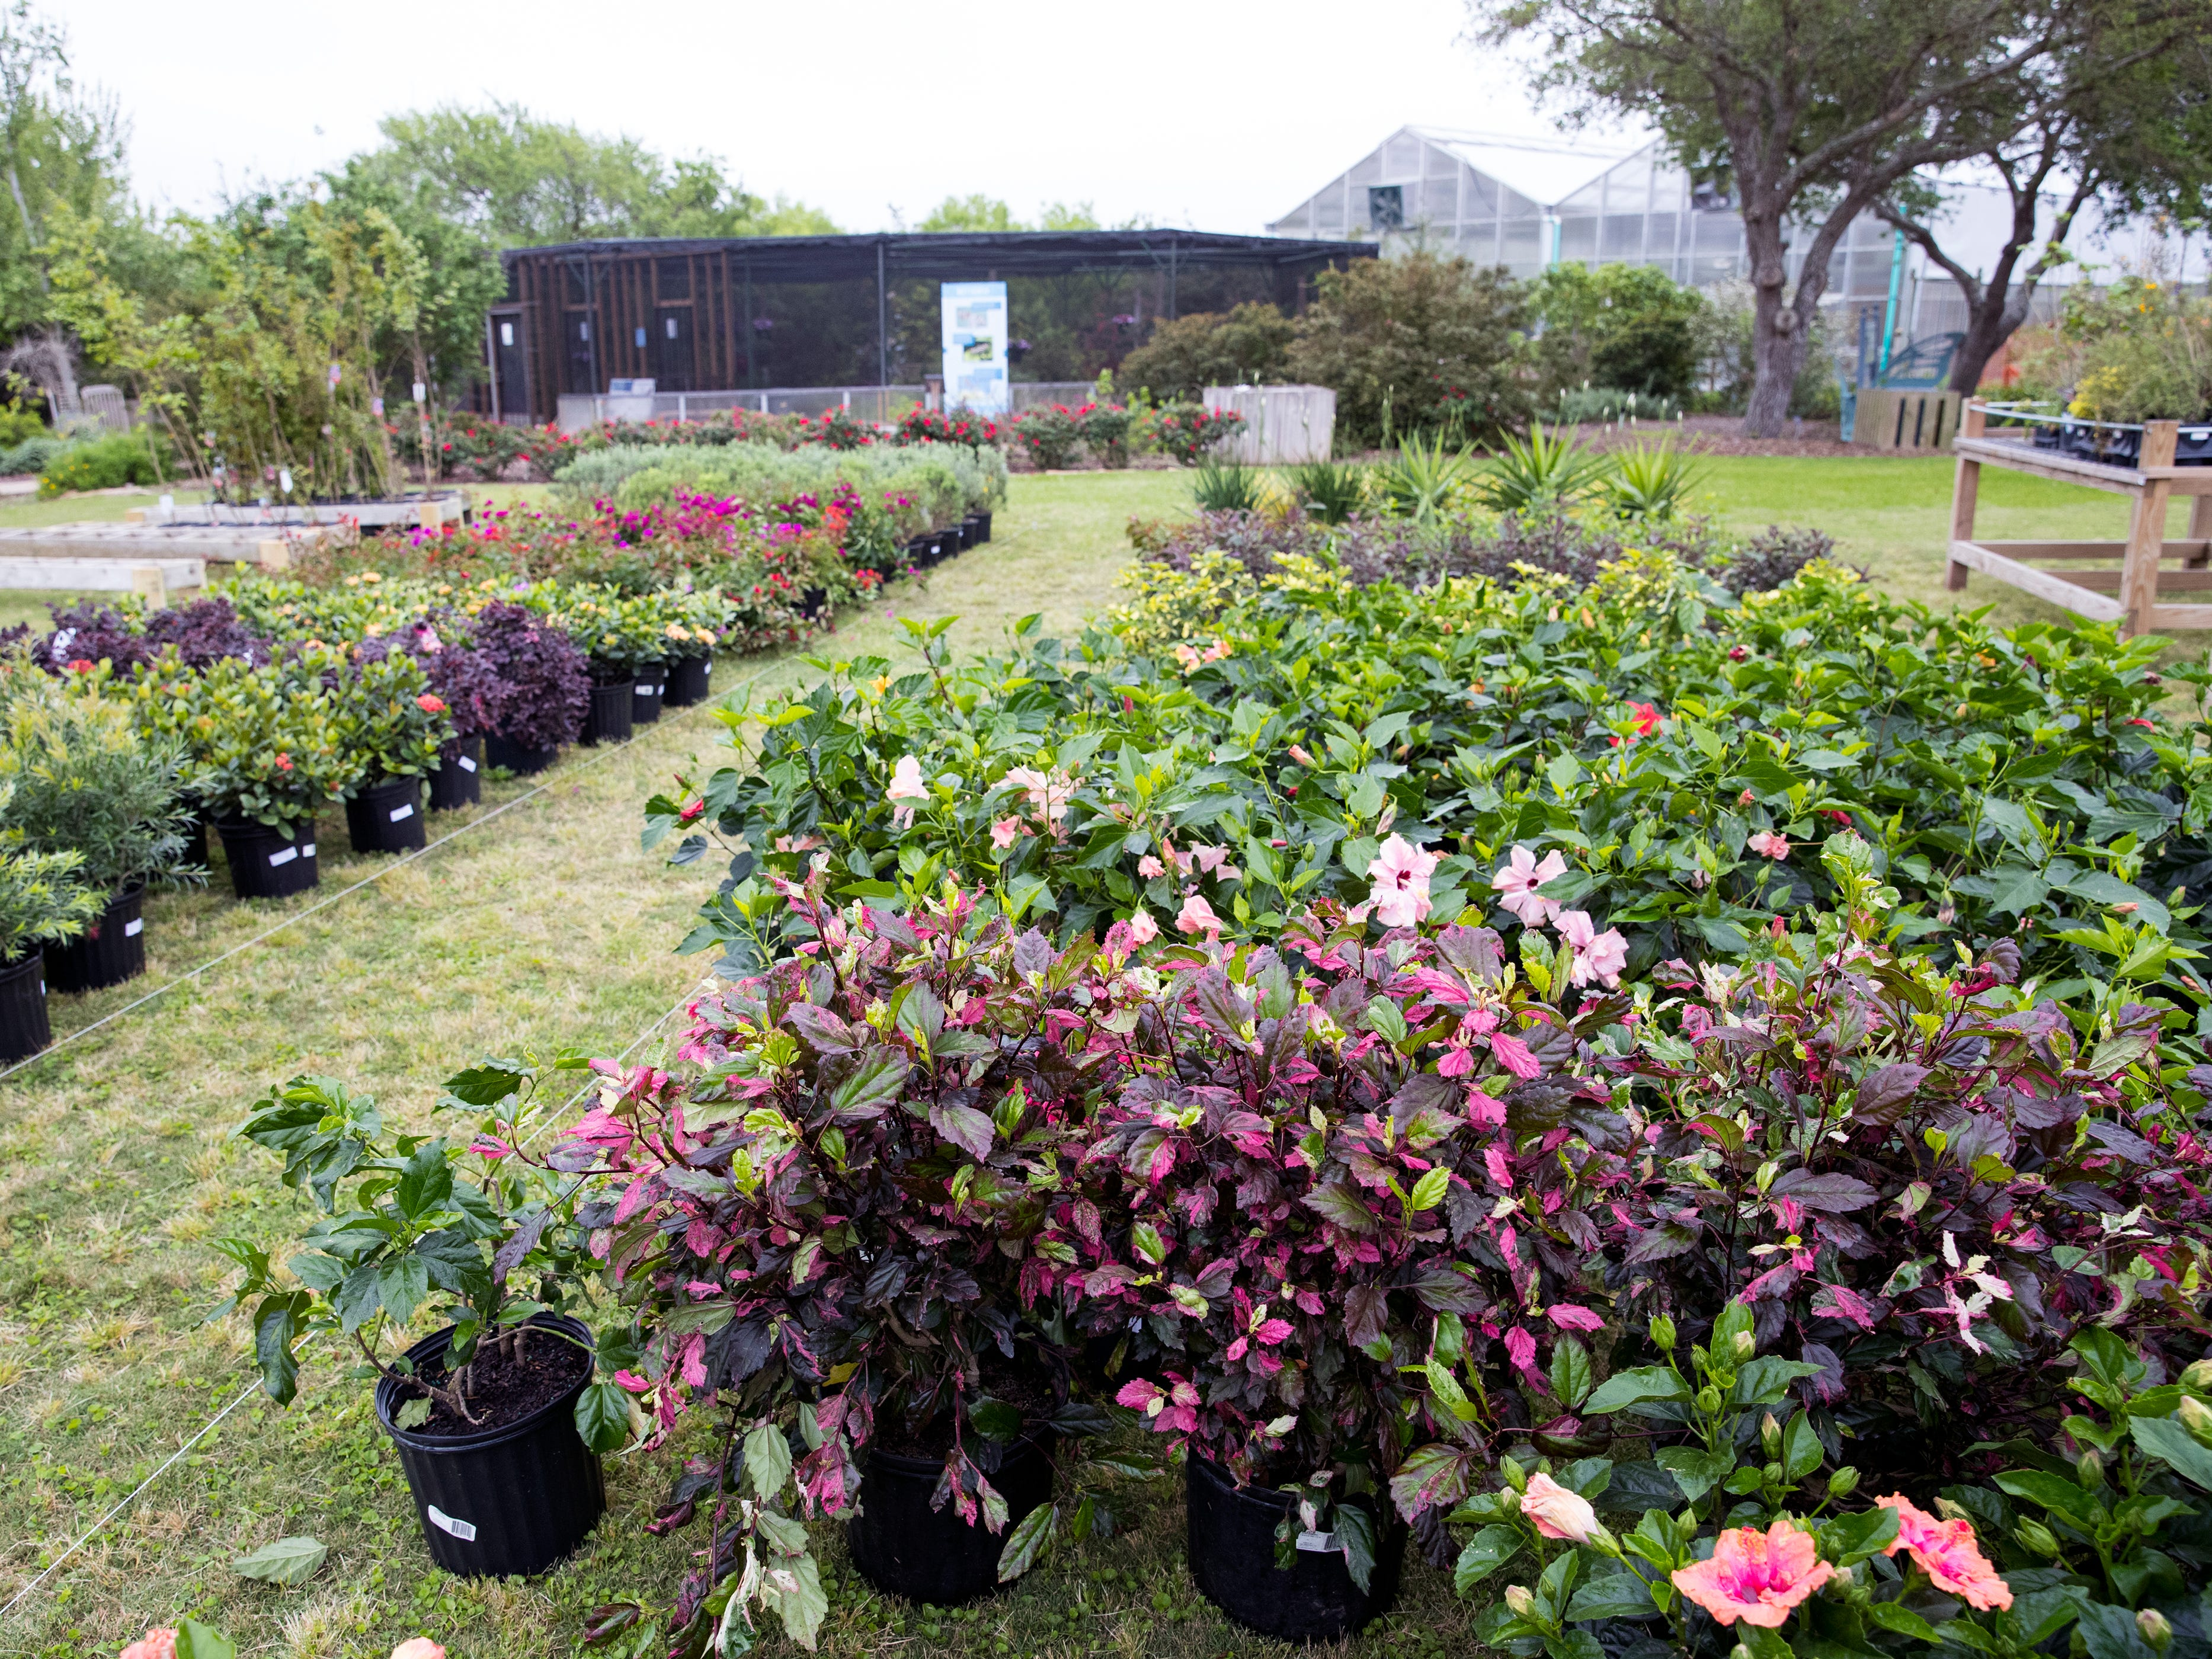 The annual Big Bloom is Saturday at the South Texas Botanical Gardens & Nature Center. Thousands of varieties of plants have been ordered from wholesalers for the event. Nueces Master Gardeners will be on hand to help visitors pick their plants and answer care questions.